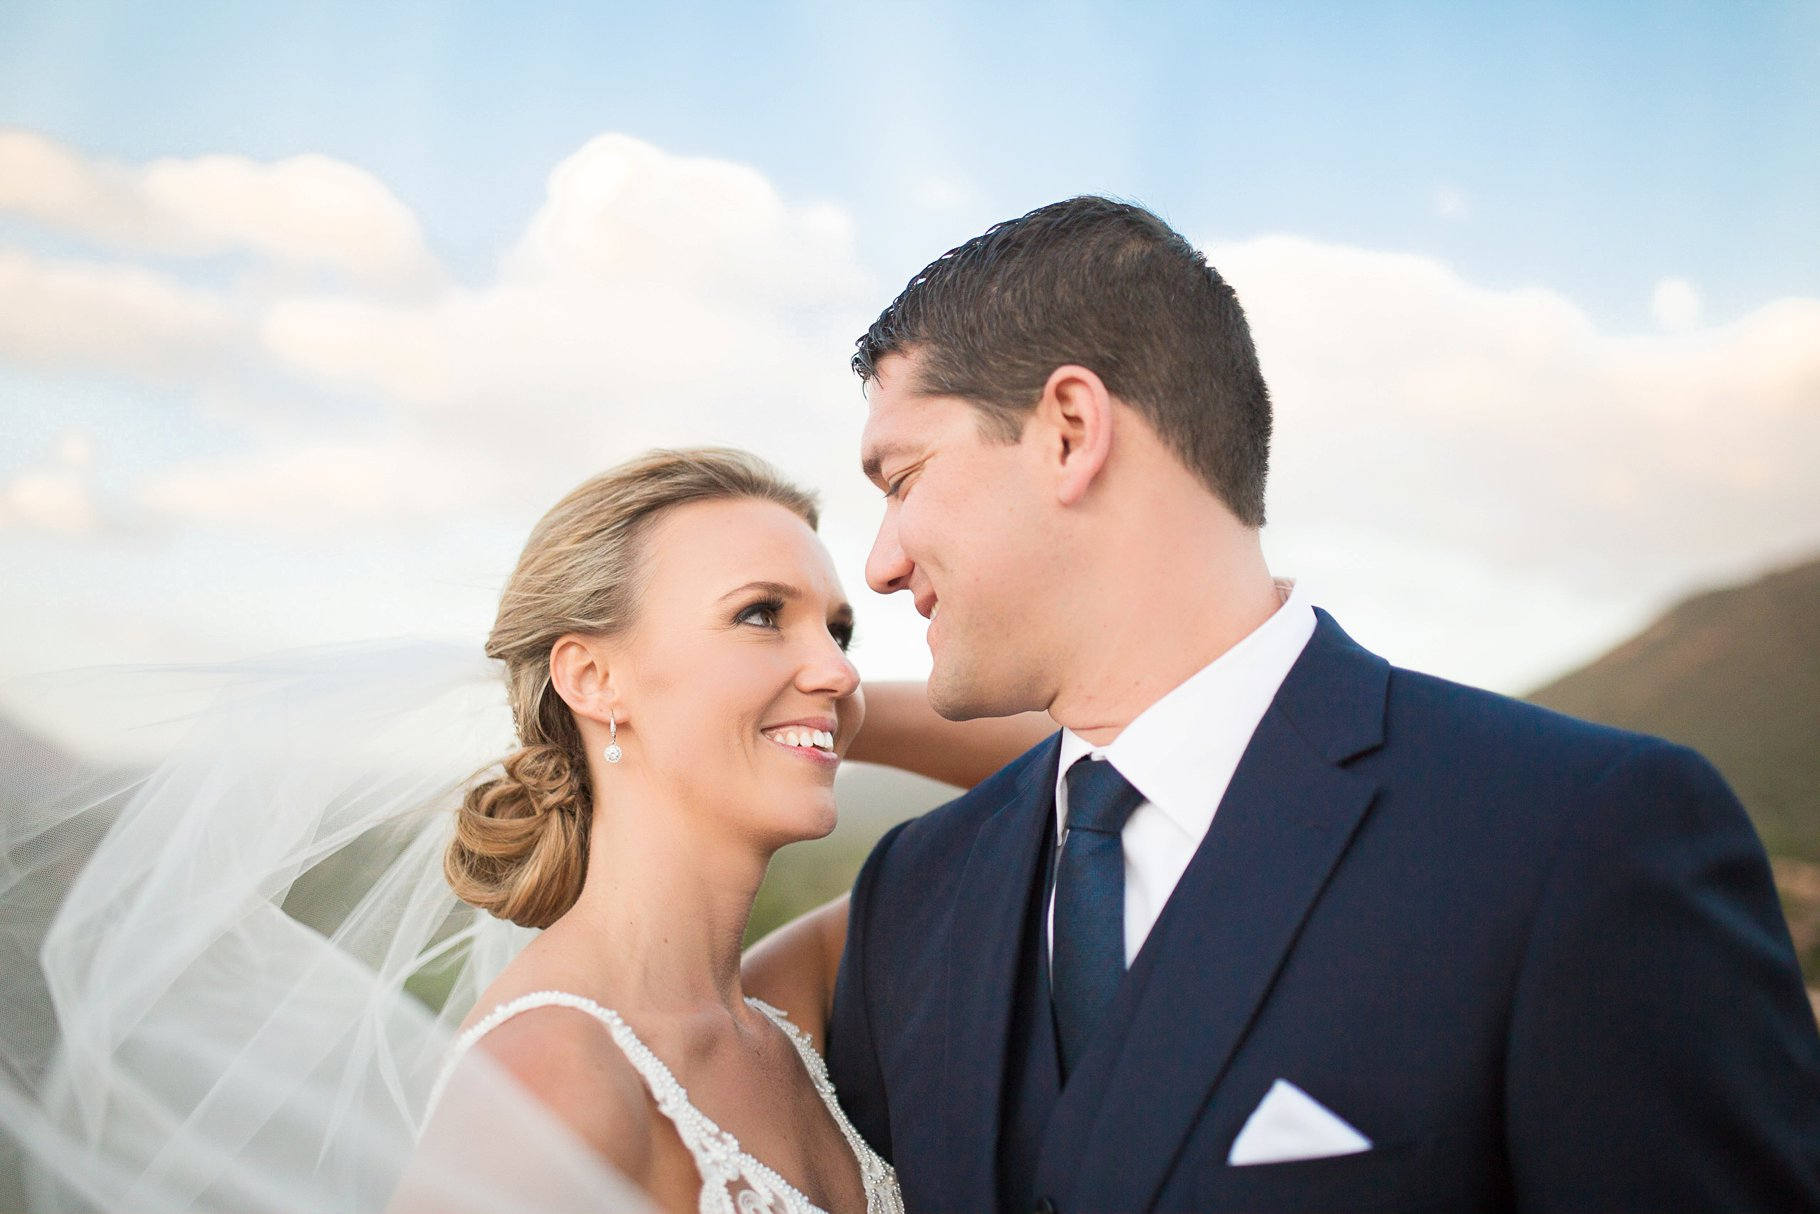 wind blowing brides veil with Sedona in backdrop